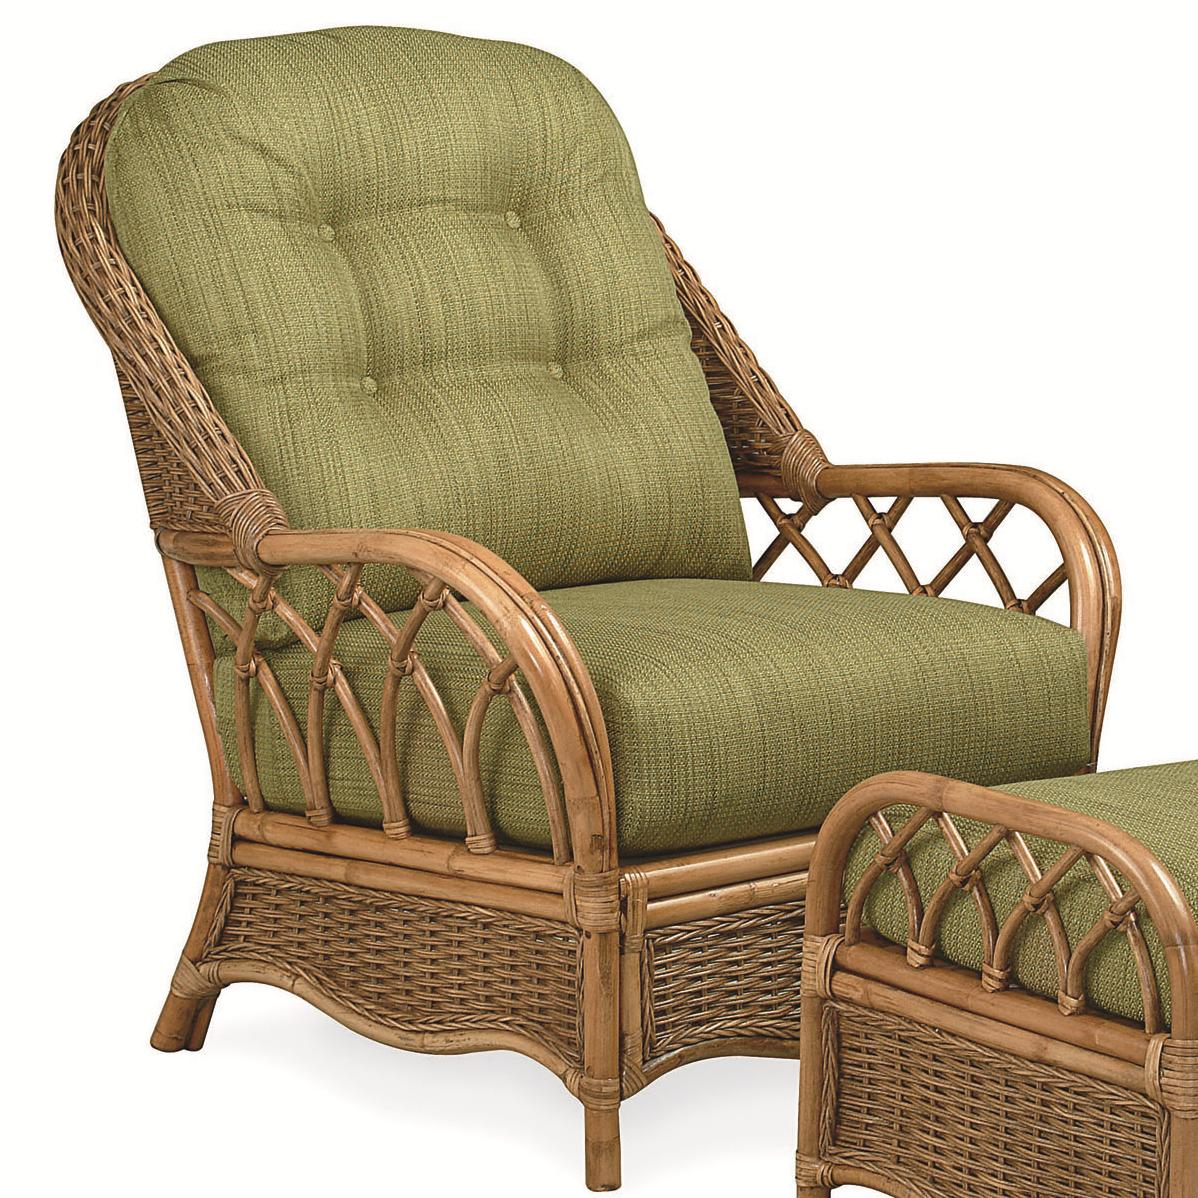 Mary's Home Furnishings Everglade Rattan Chair - Item Number: 905-01